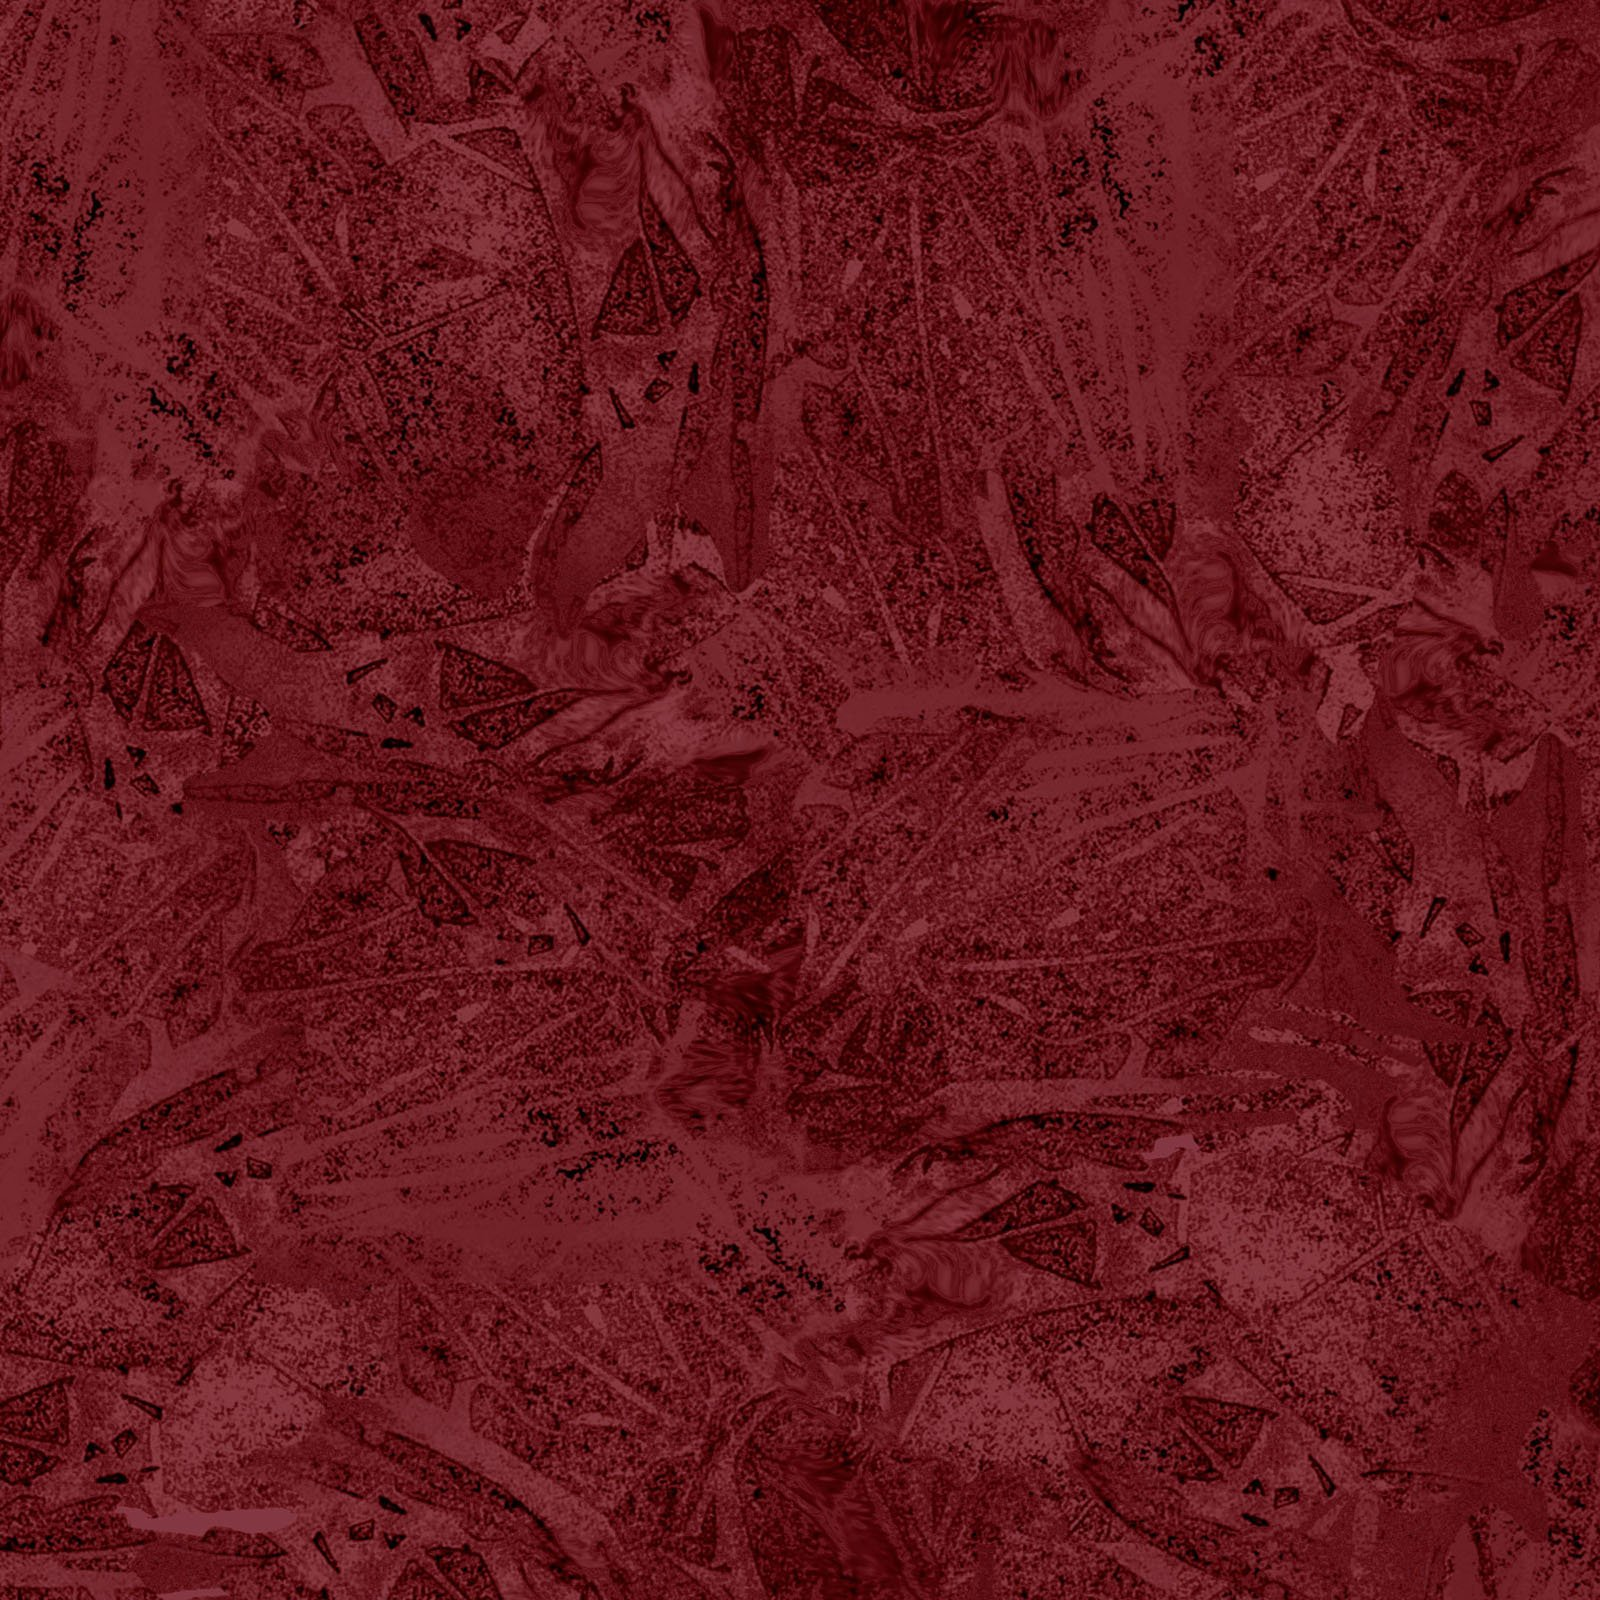 FRAC-4123 DR - FRACTURE BY TERESA ASCONE DK RED